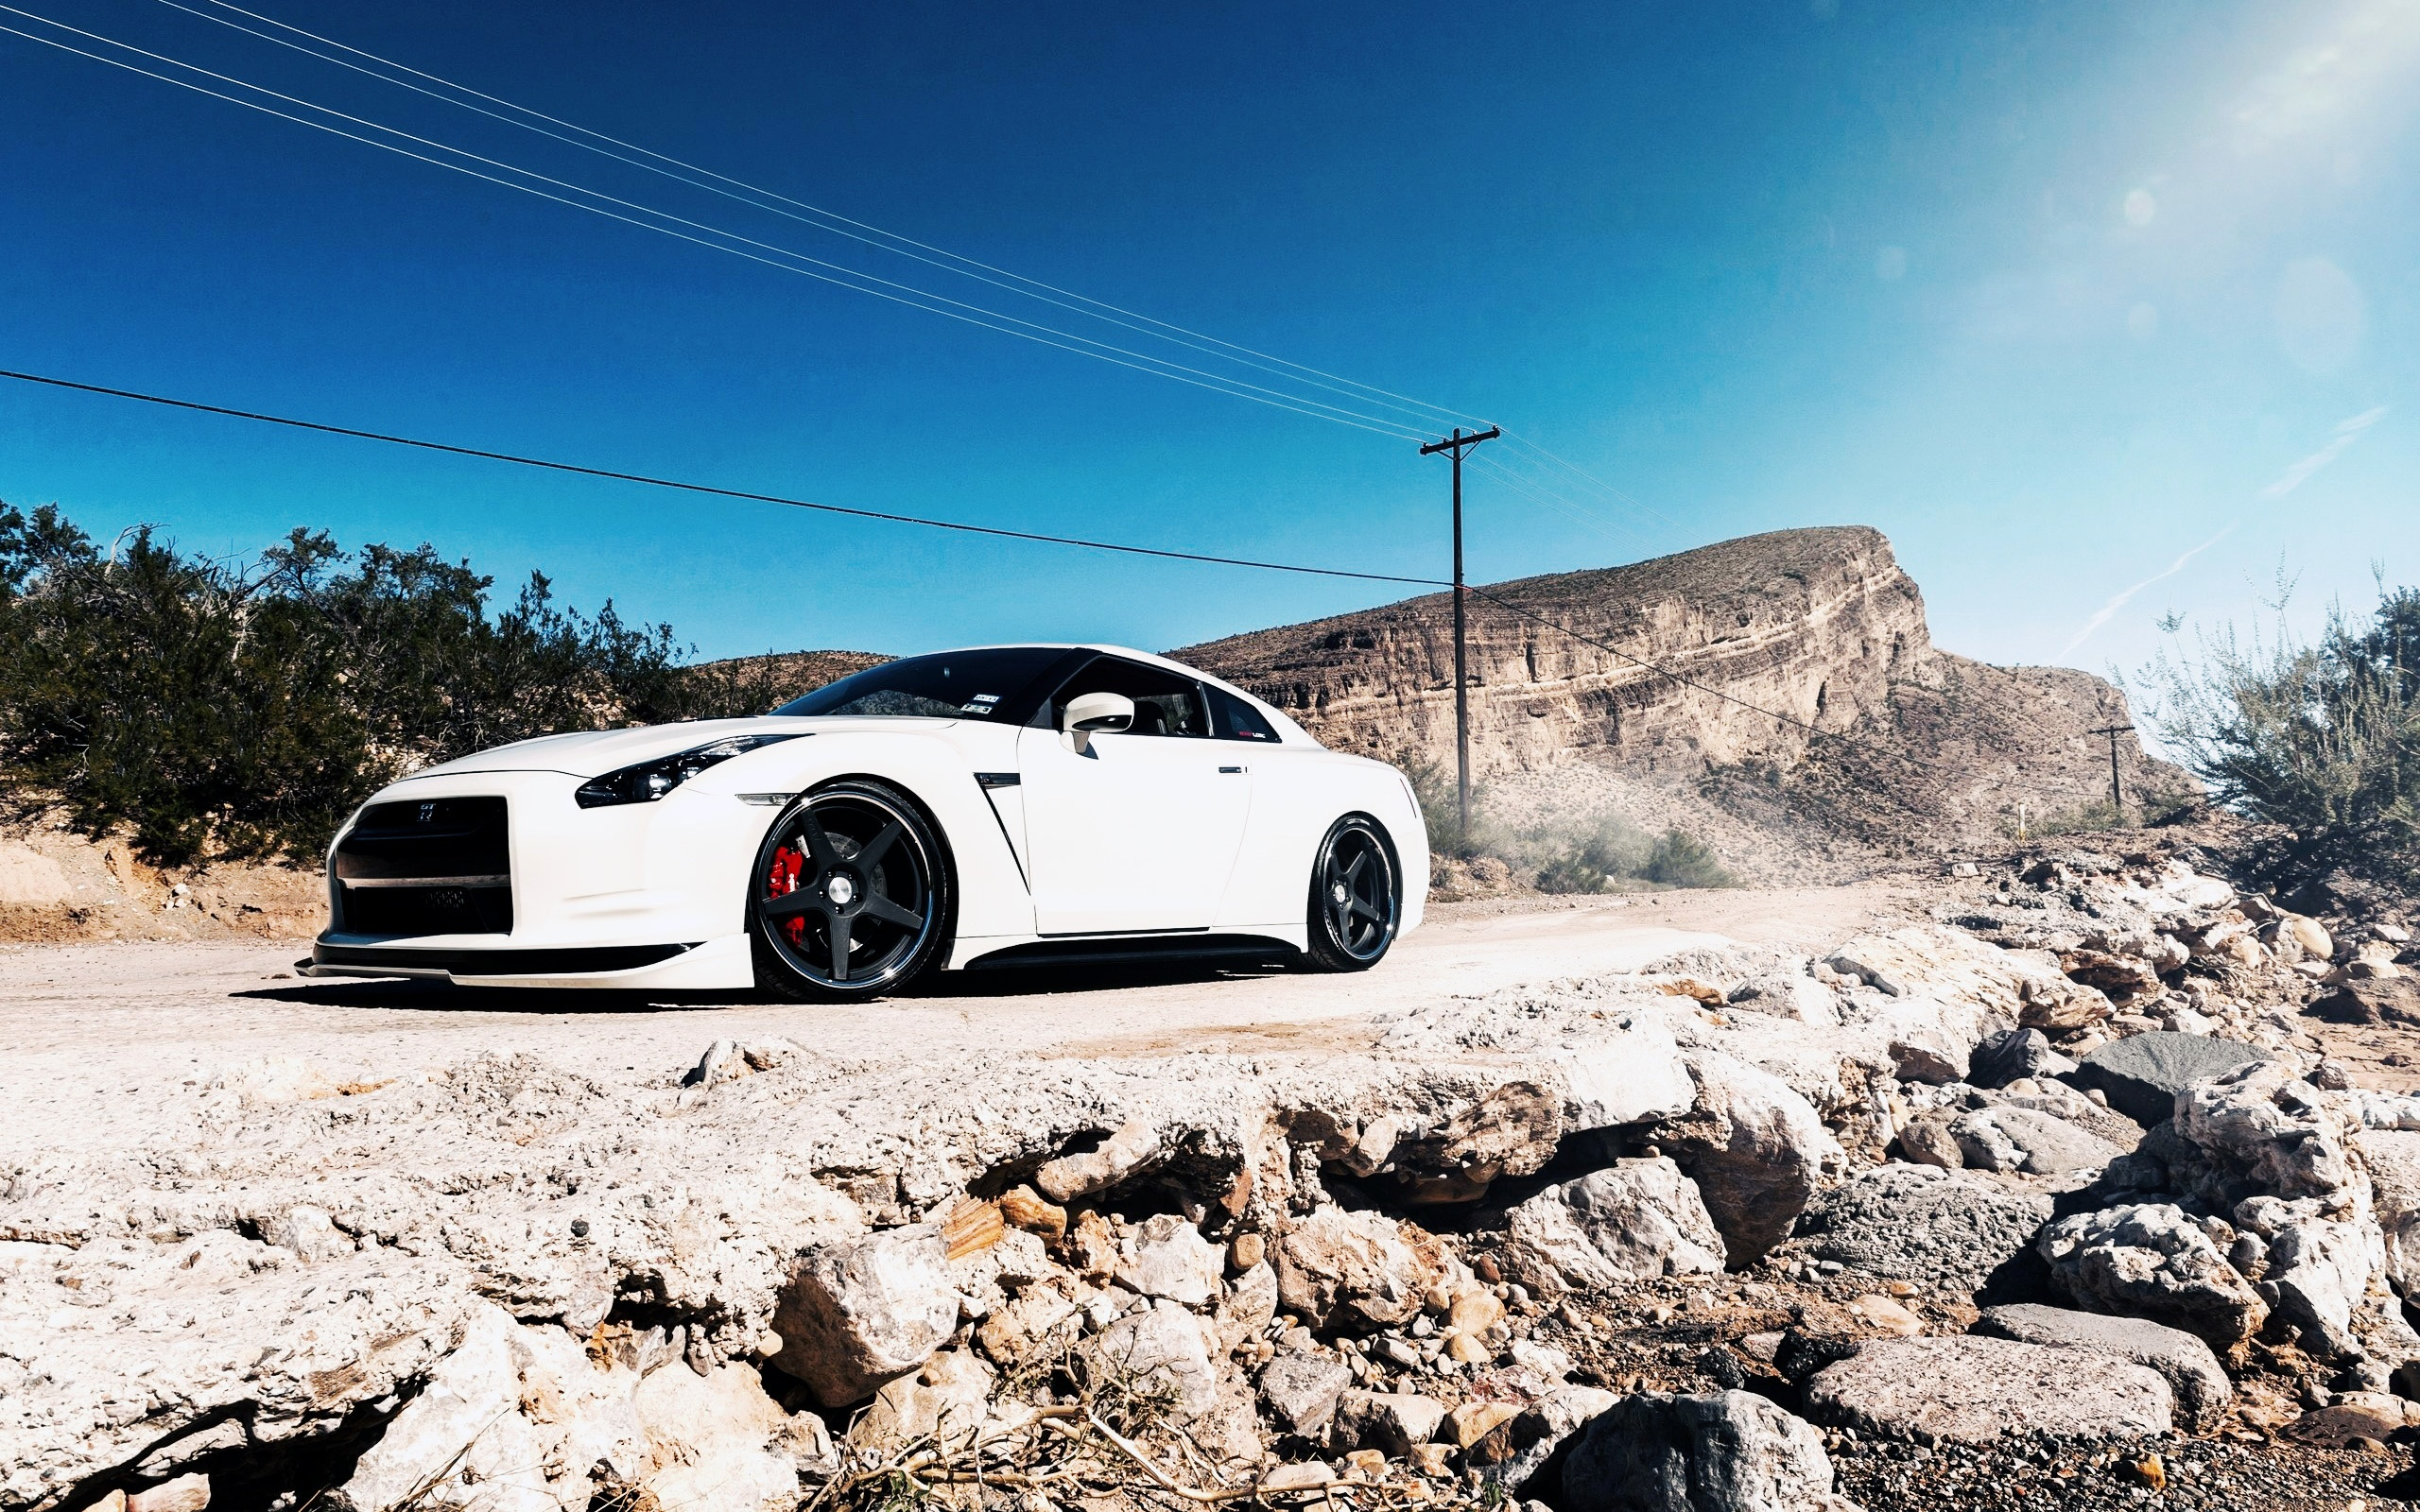 White Nissan Gtr Wallpaper Hd